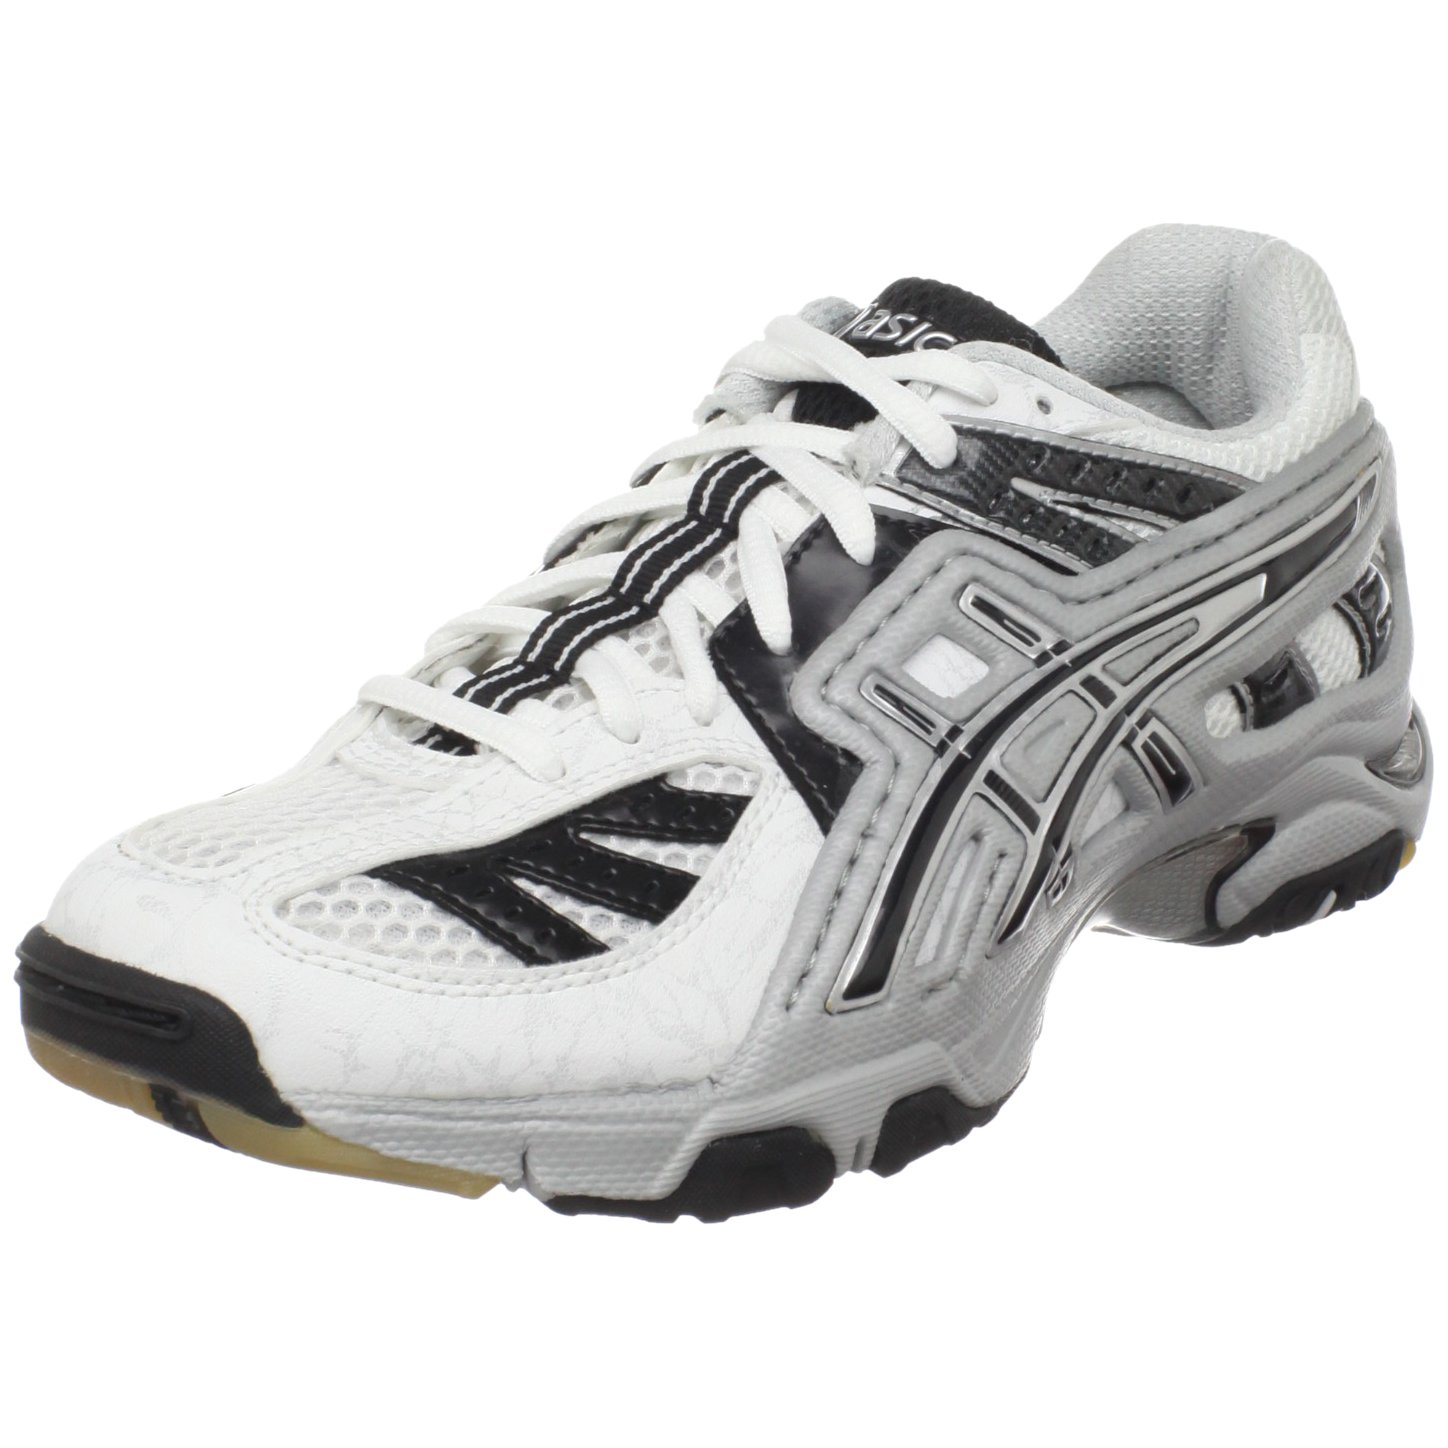 5e117eff7 ASICS Women s GEL-Volley Lyte Volleyball Shoe White Black Silver 11.5 M US  B055N